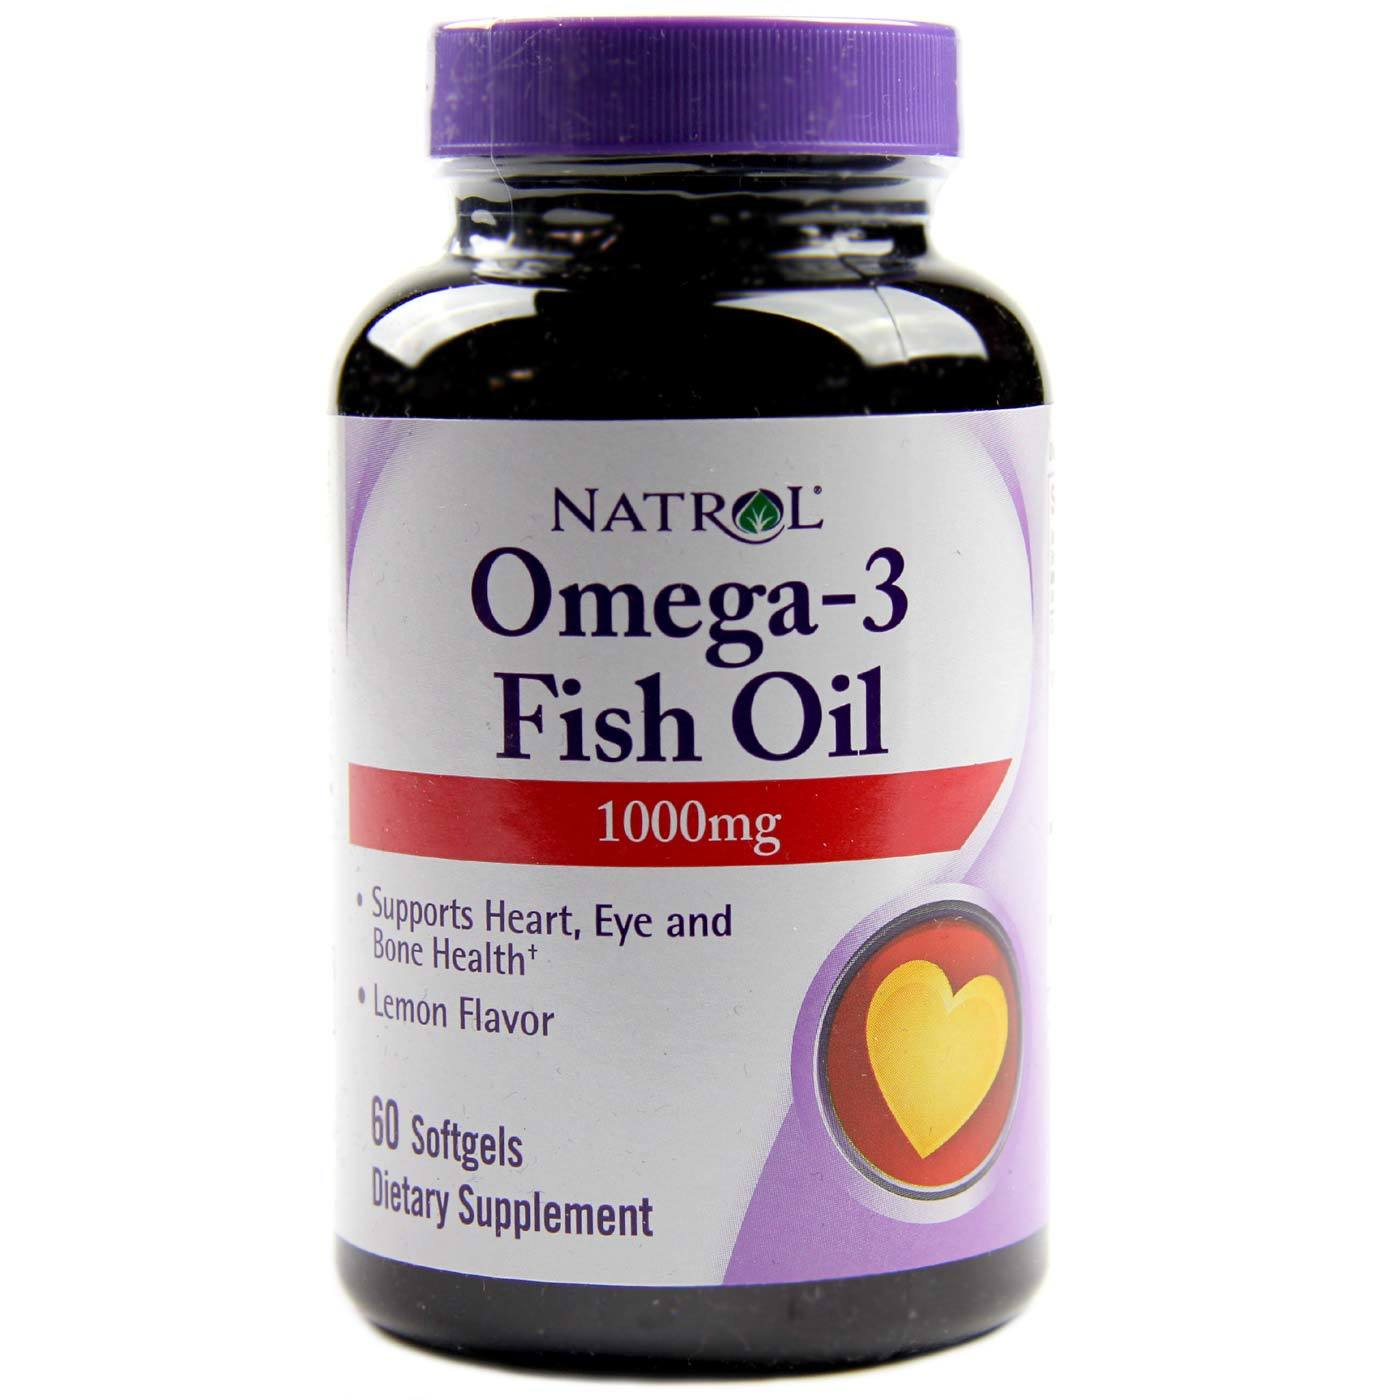 Natrol omega 3 fish oil lemon 1000 mg 60 softgels for What is omega 3 fish oil good for